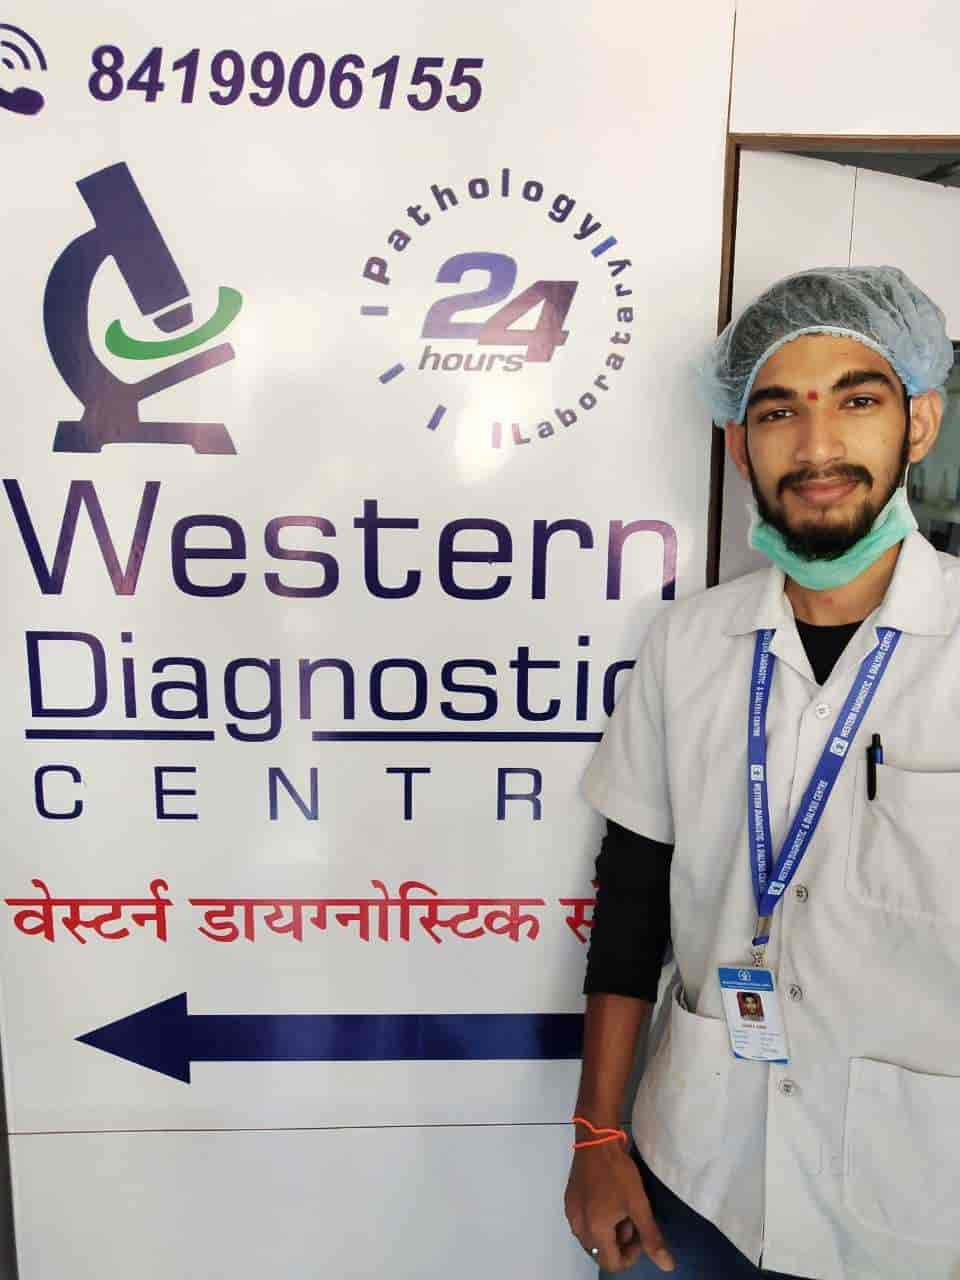 Western Diagnostic and Dialysis Centre, Kandivali West